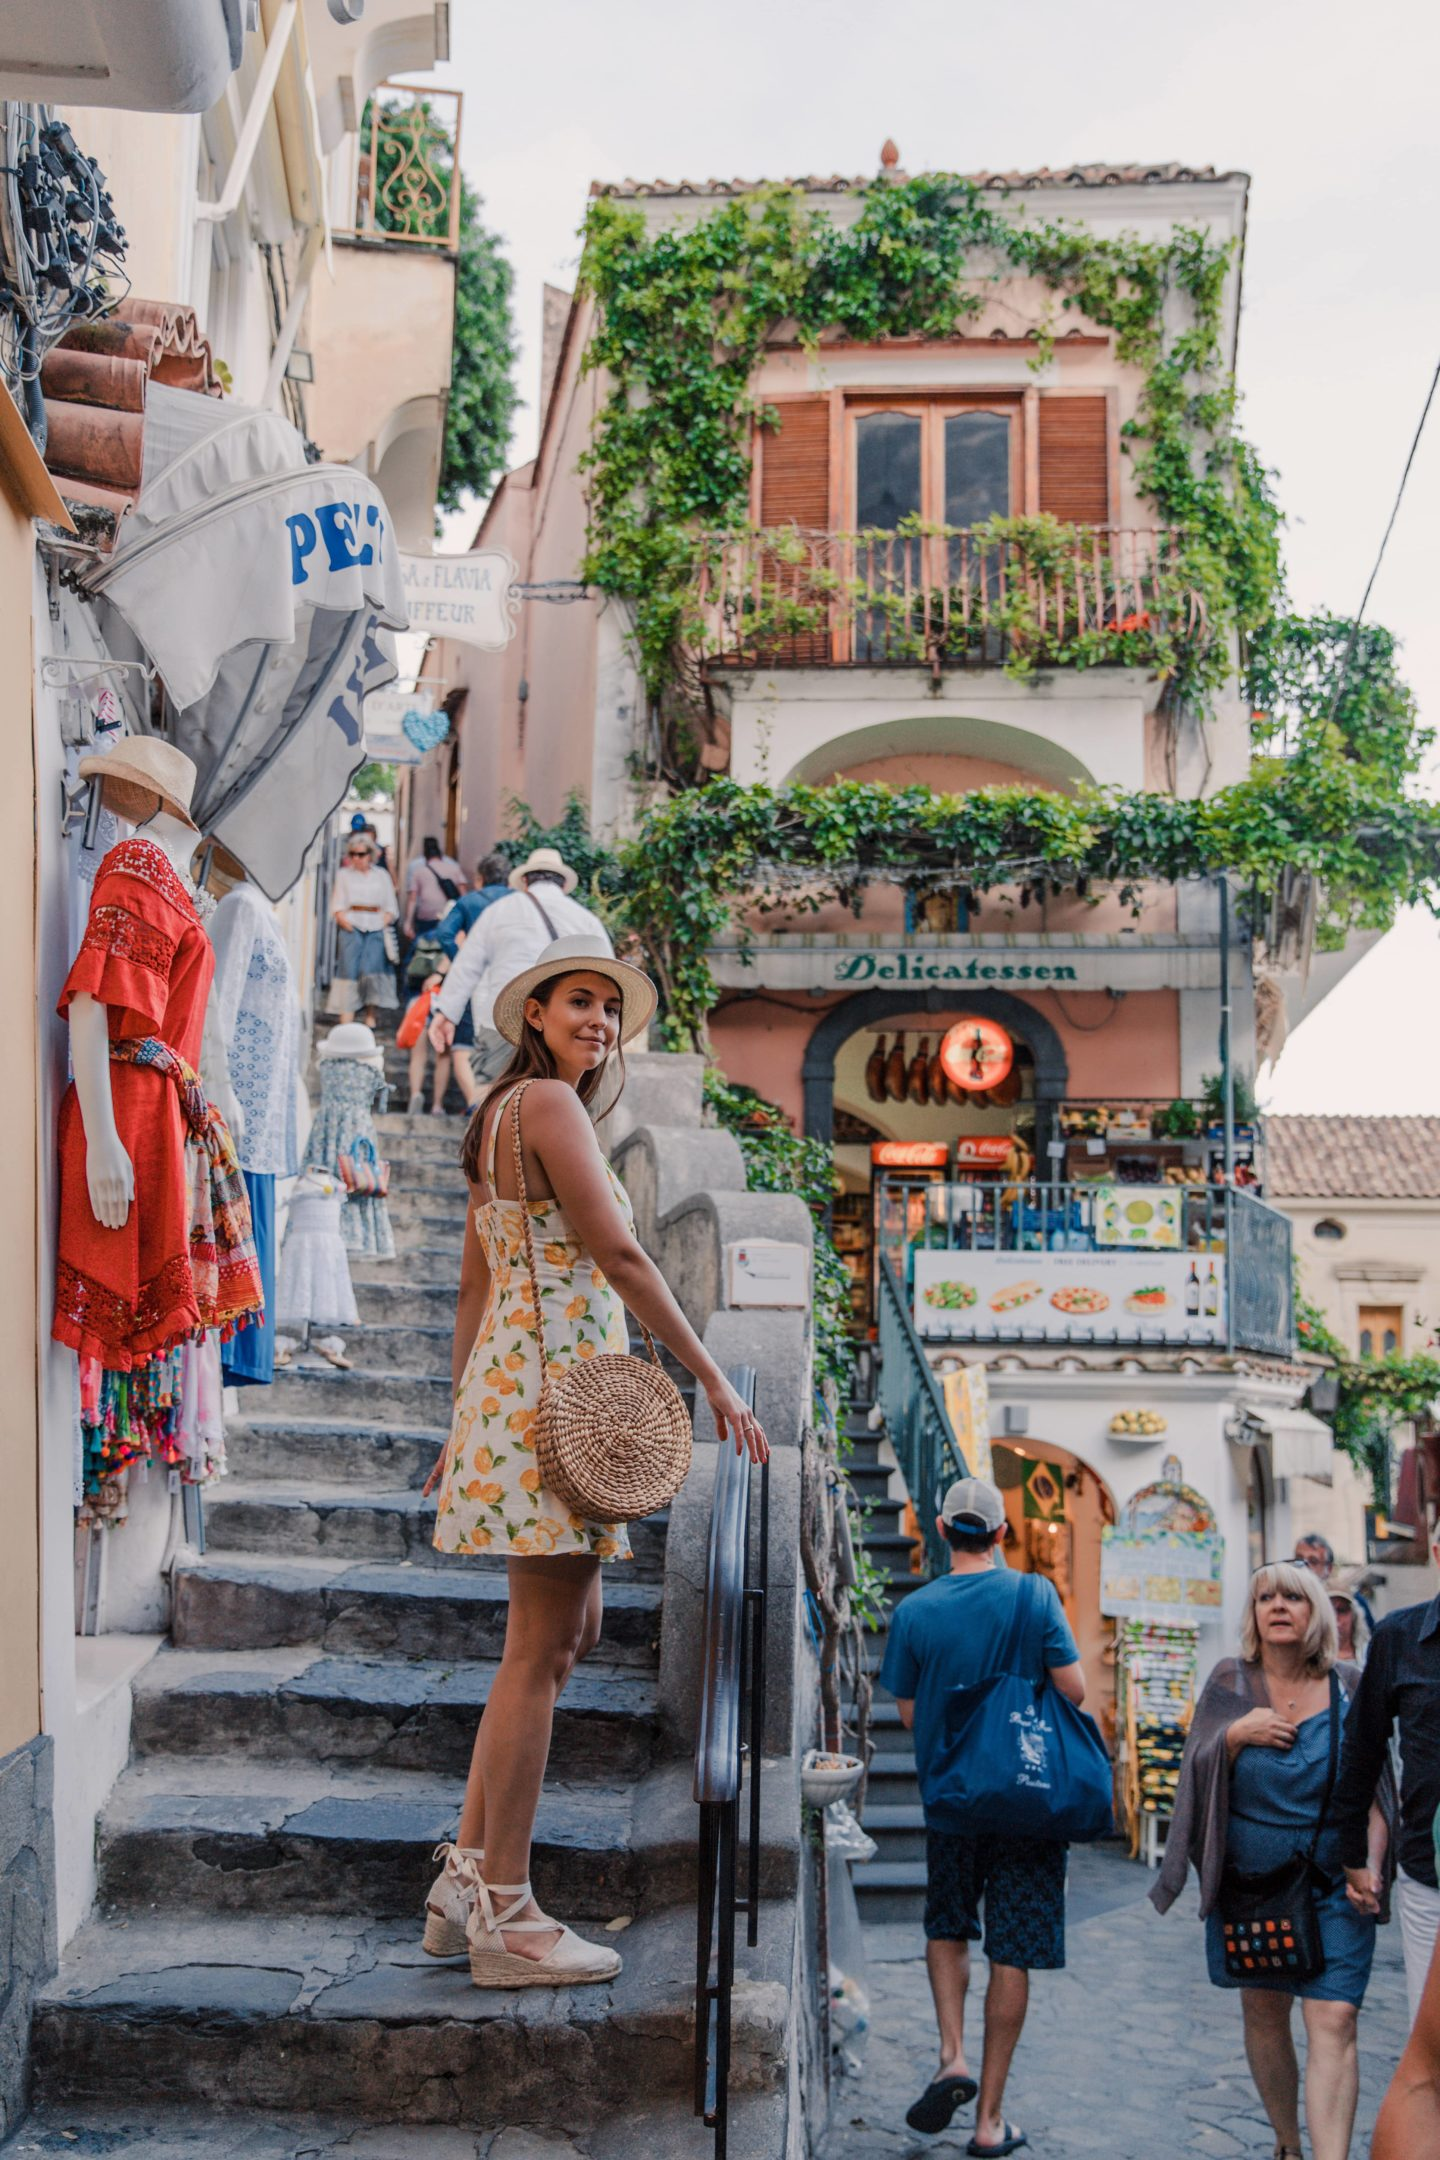 The Best Positano Instagram Shots | 12 Beautiful Shots You Can't Miss: The Deli